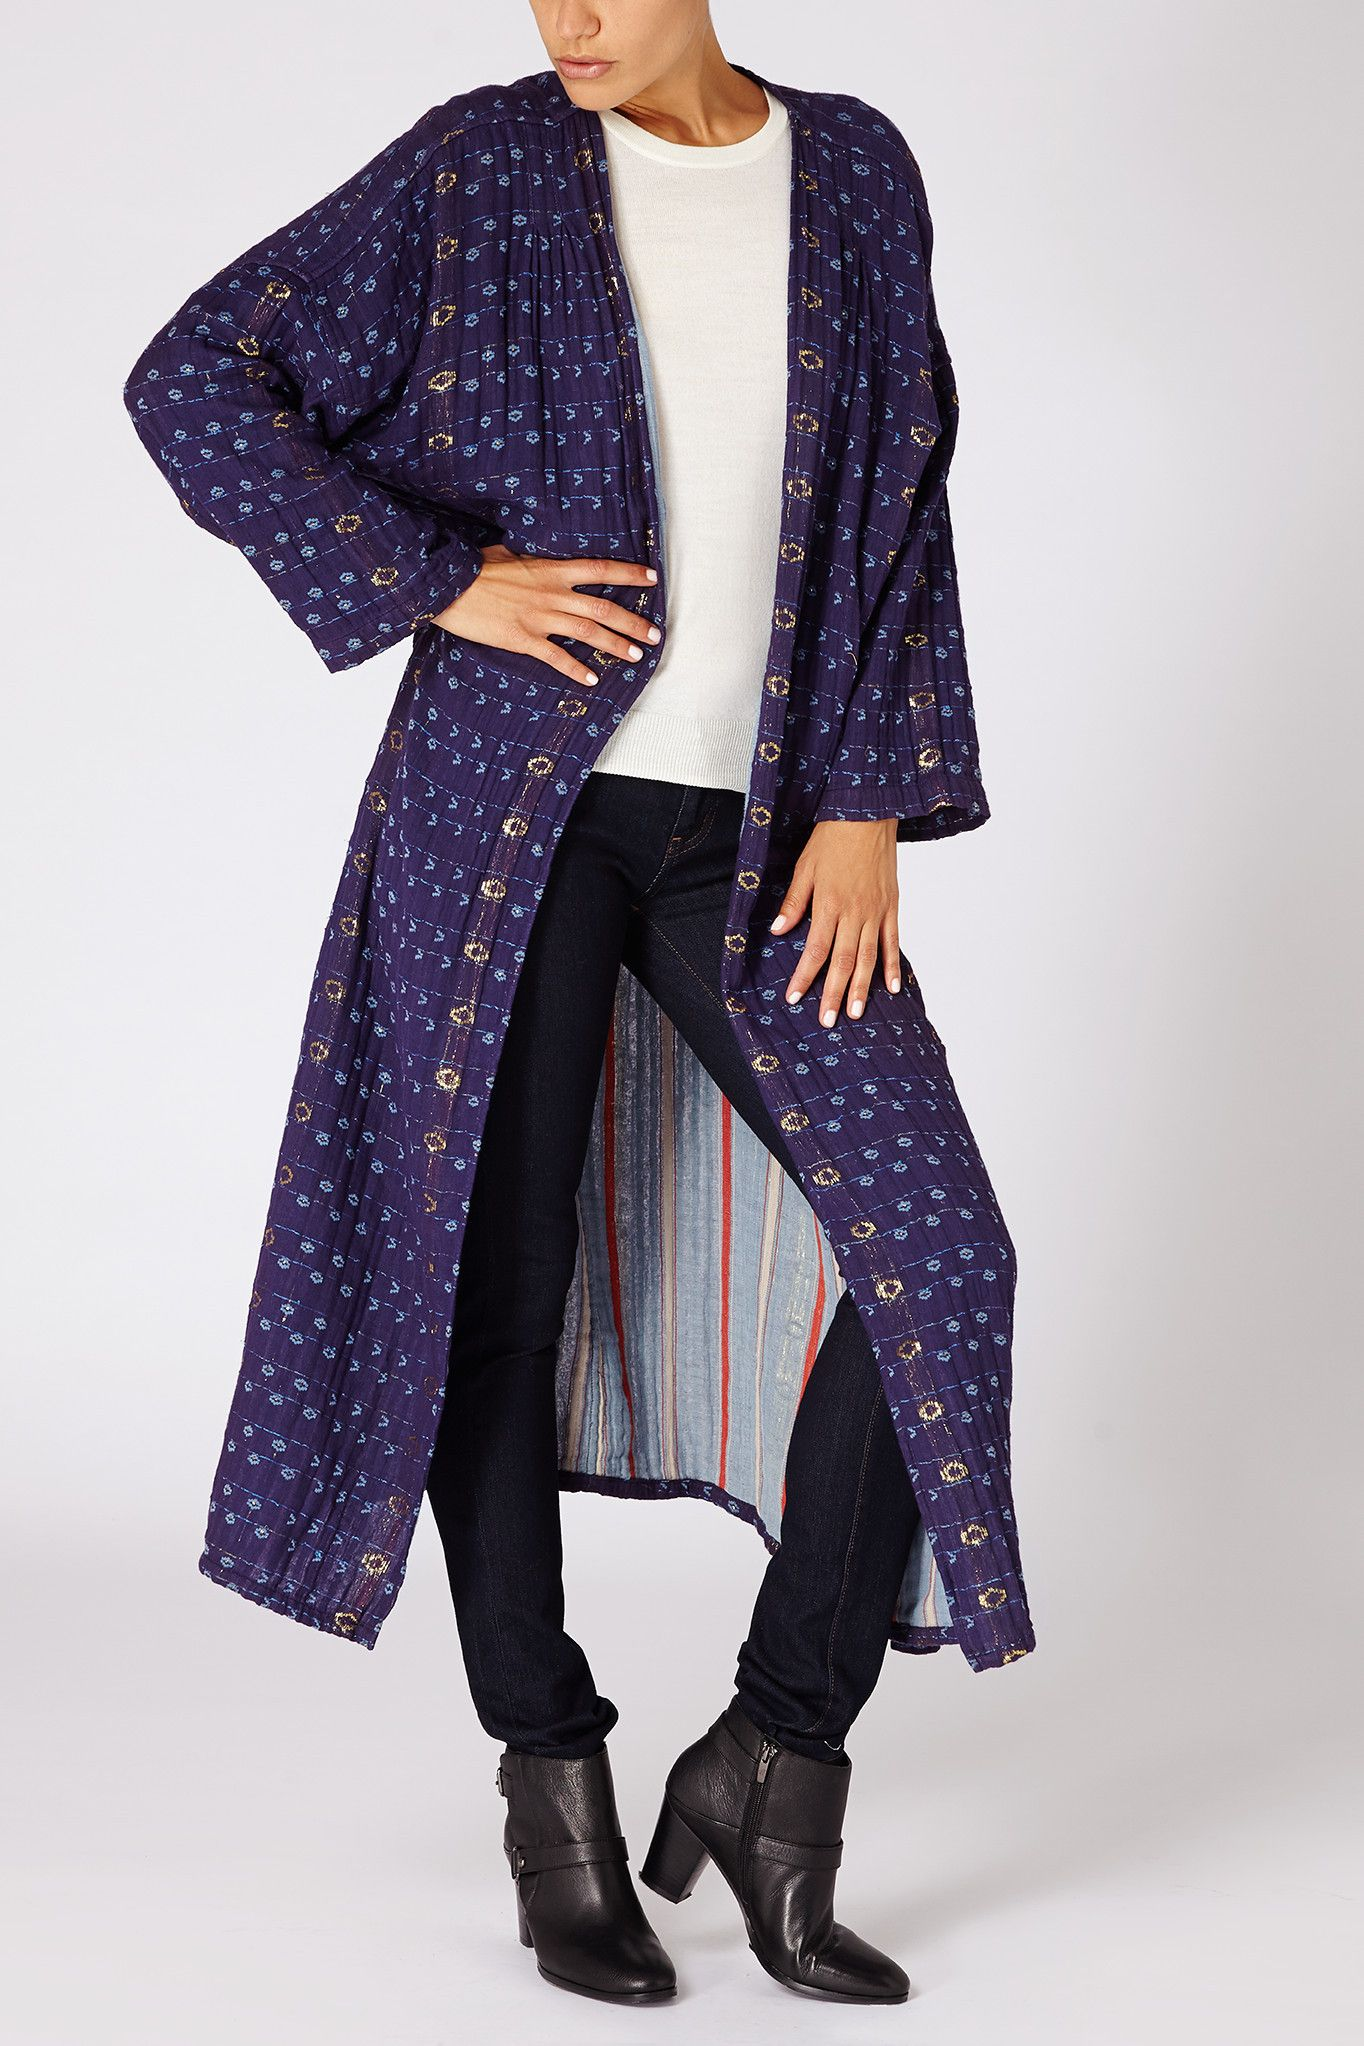 Reverisble Duster in Royal and Jubilee